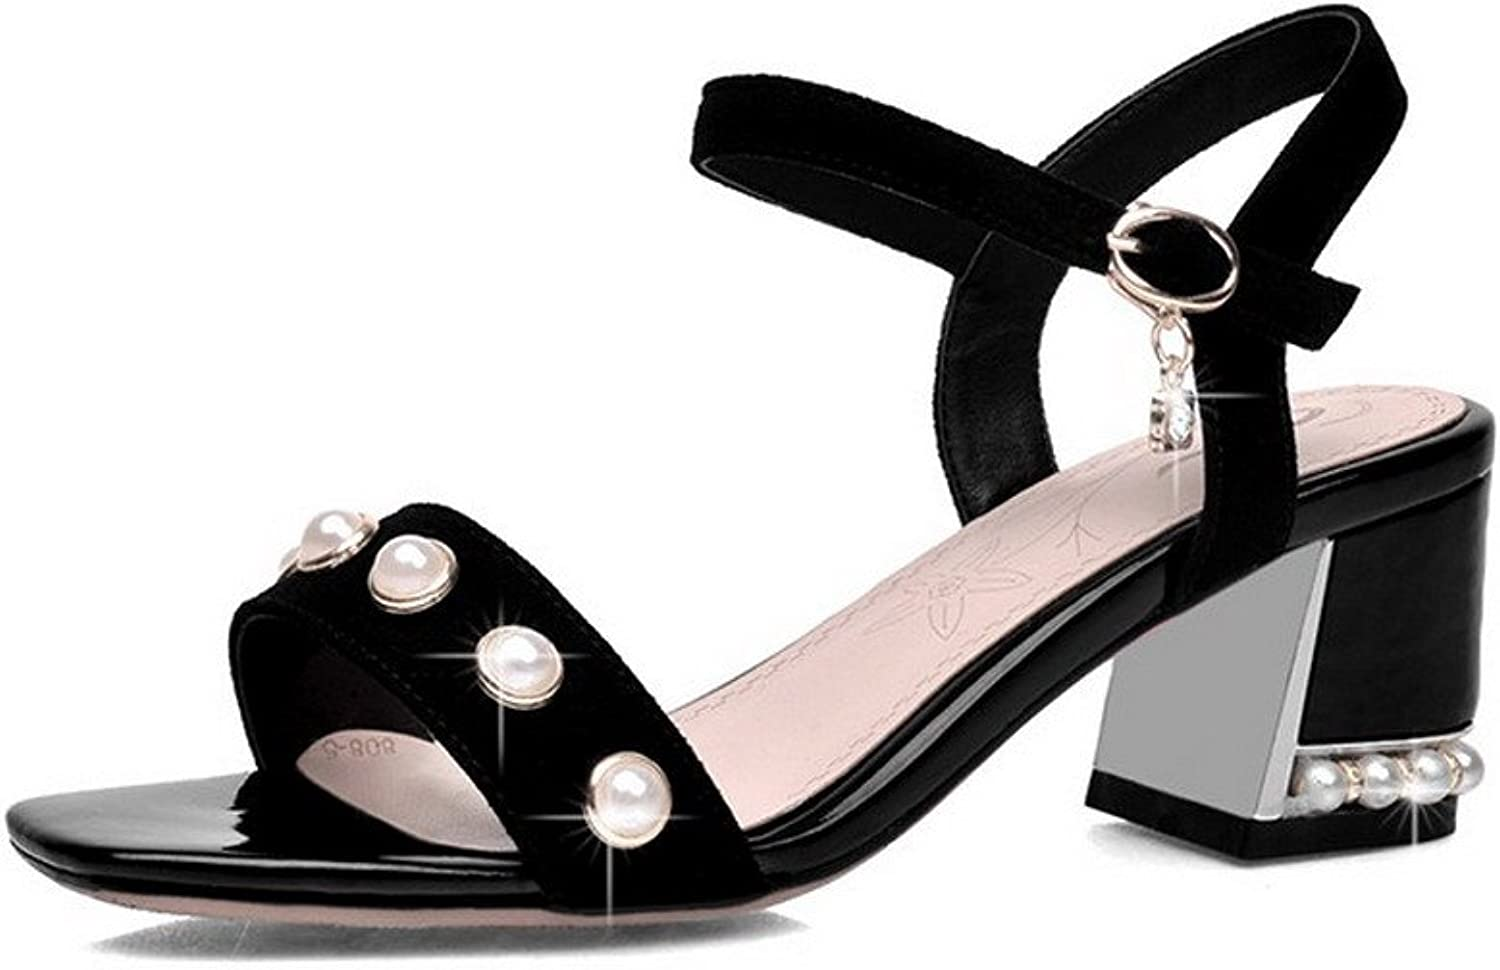 AmoonyFashion Women's Open-Toe Kitten-Heels Frosted Solid Buckle Sandals